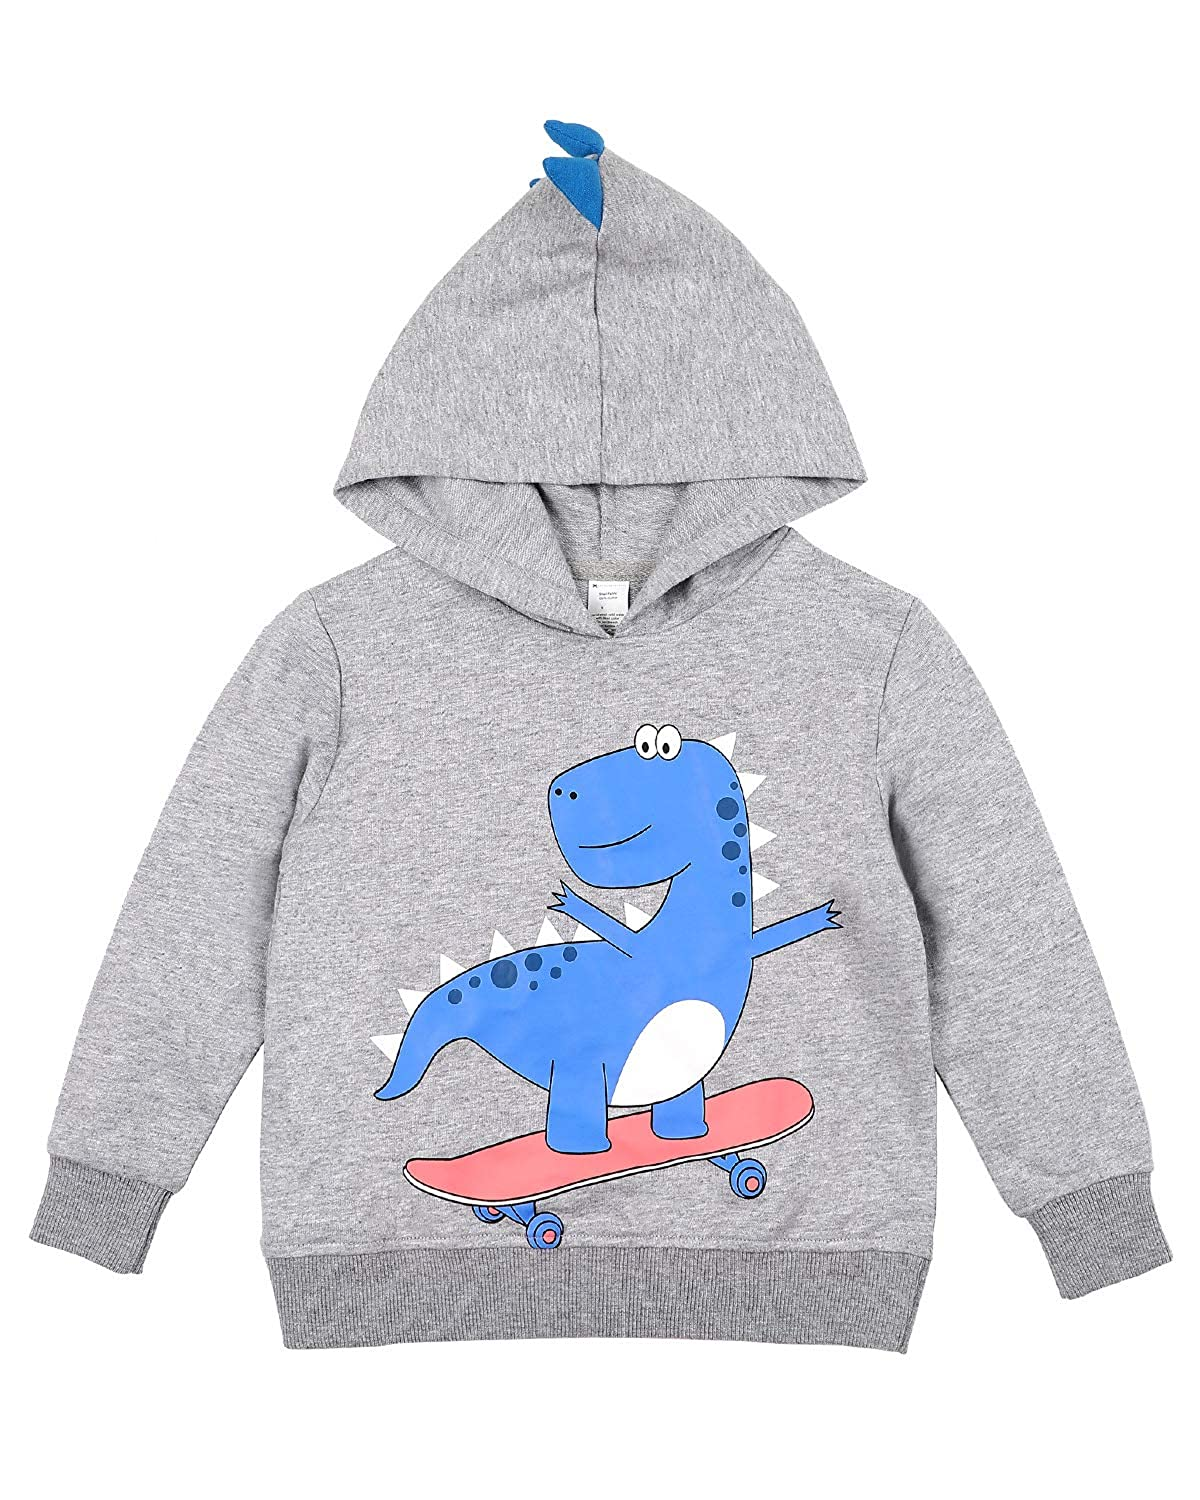 vivicoco Kid's Hoodies Sweatshirts Hooded Sweatshirt 100% Cotton